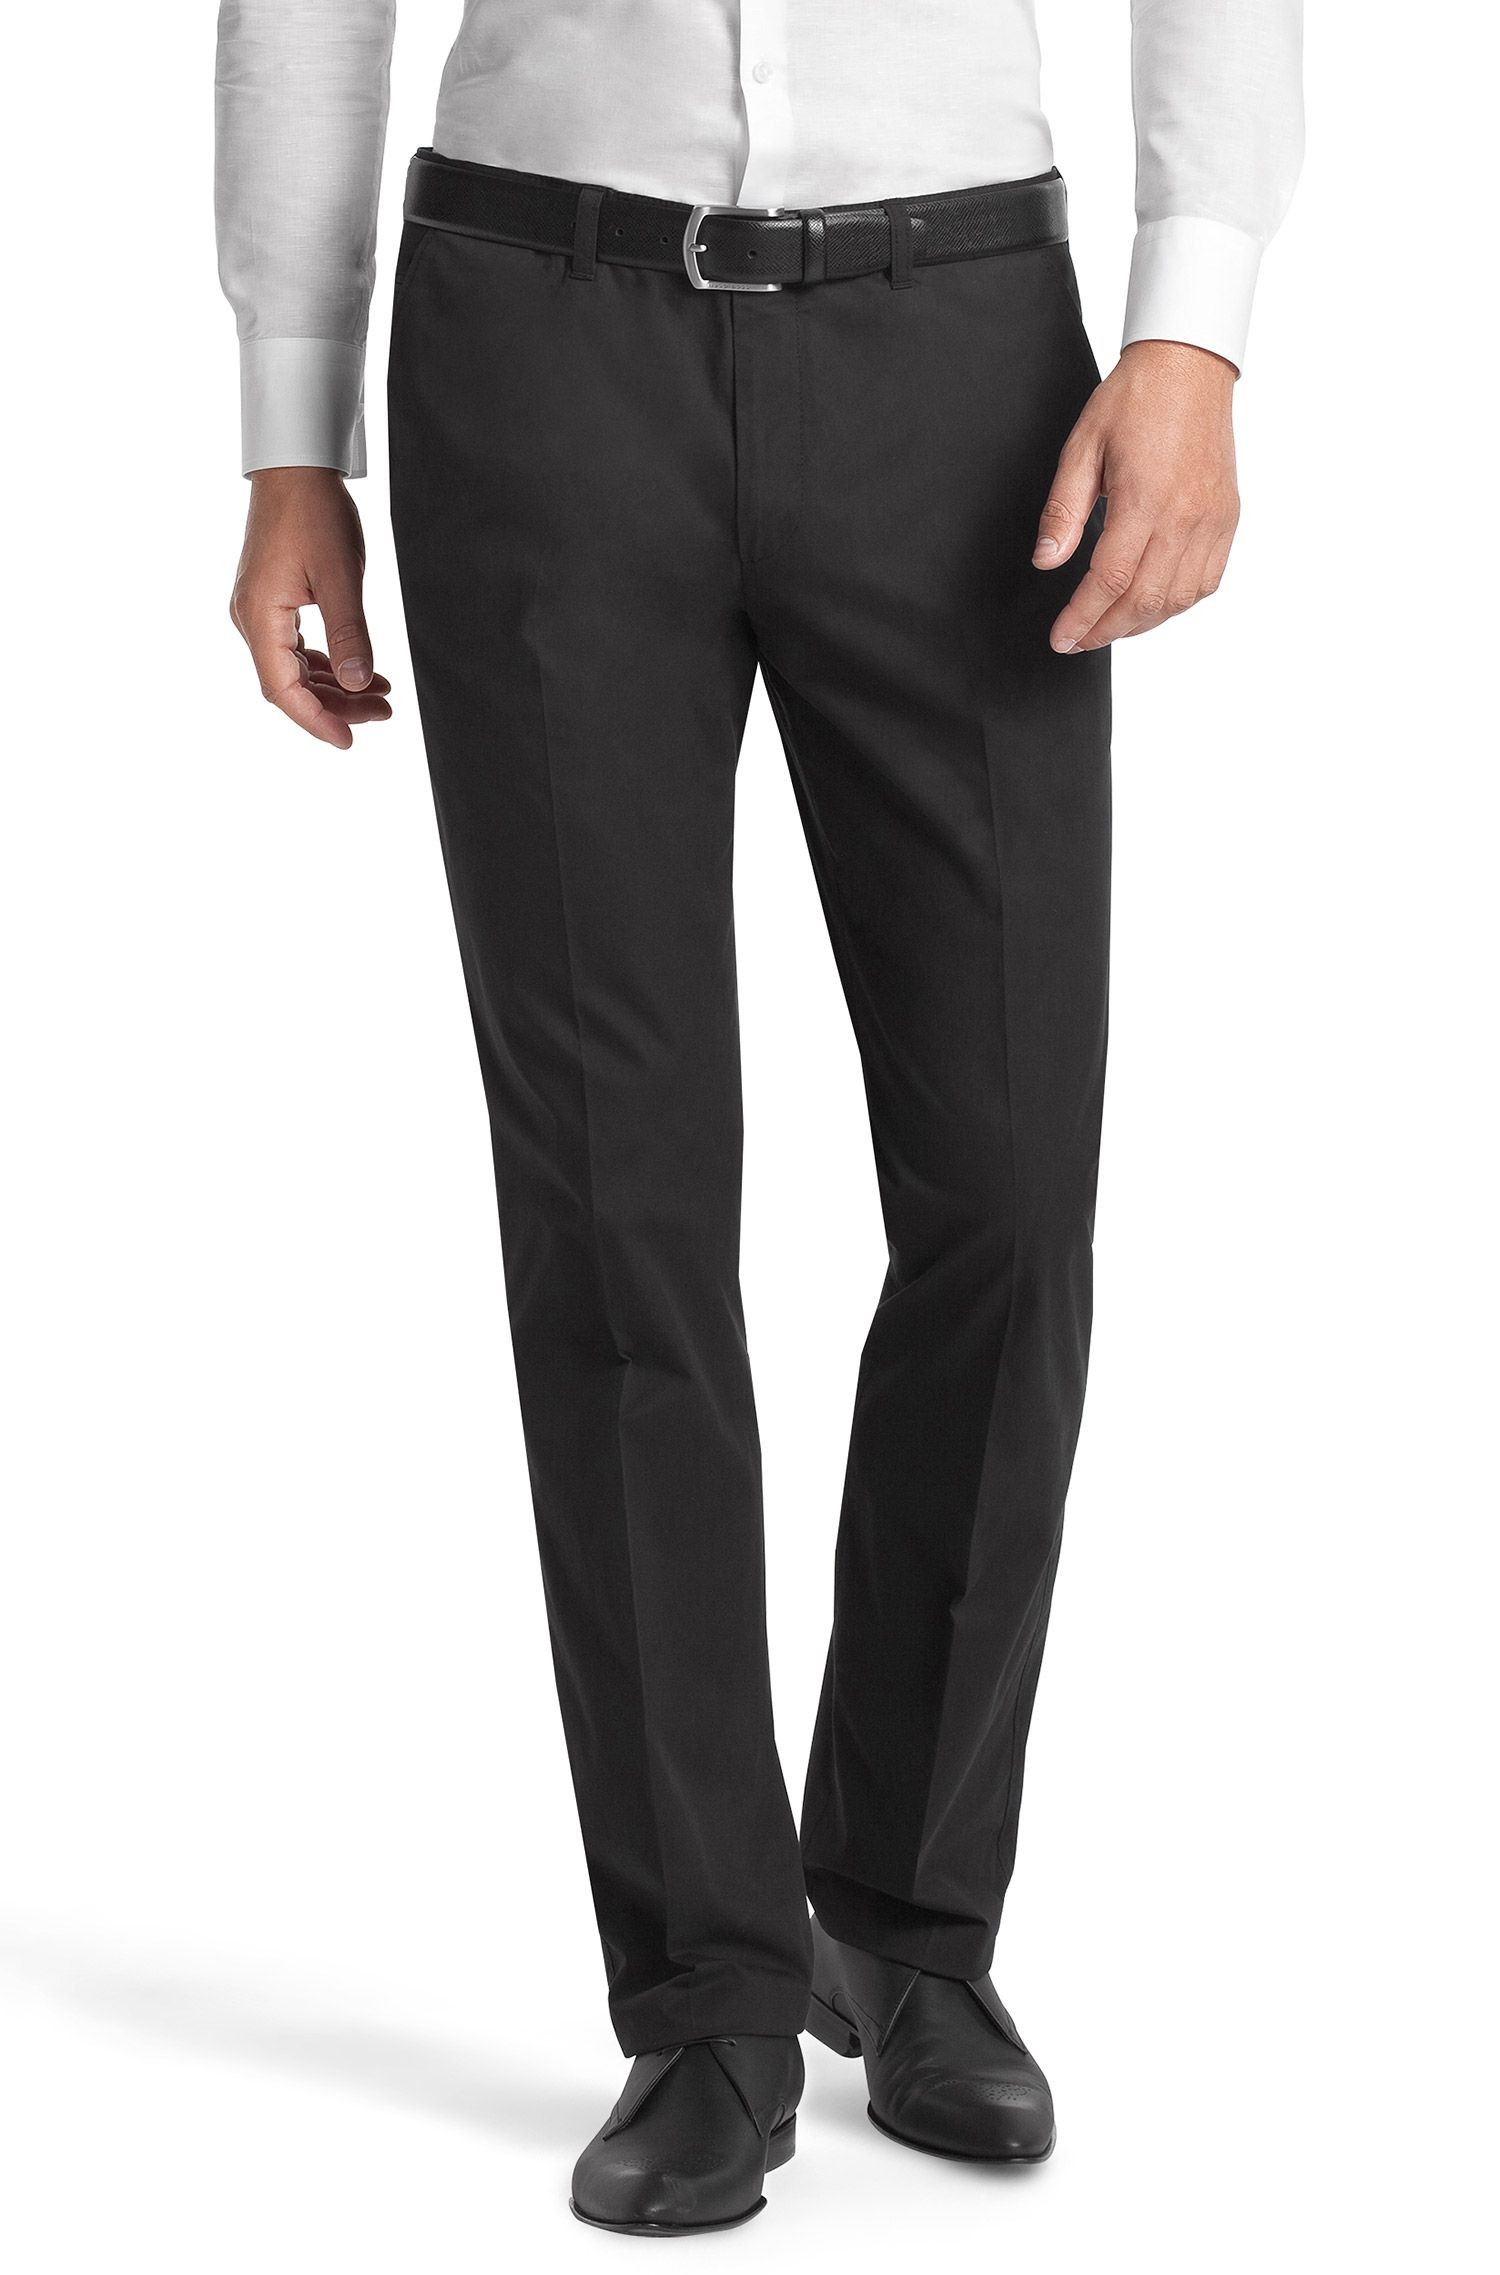 Pantalon détente en coton, Shadow4-W